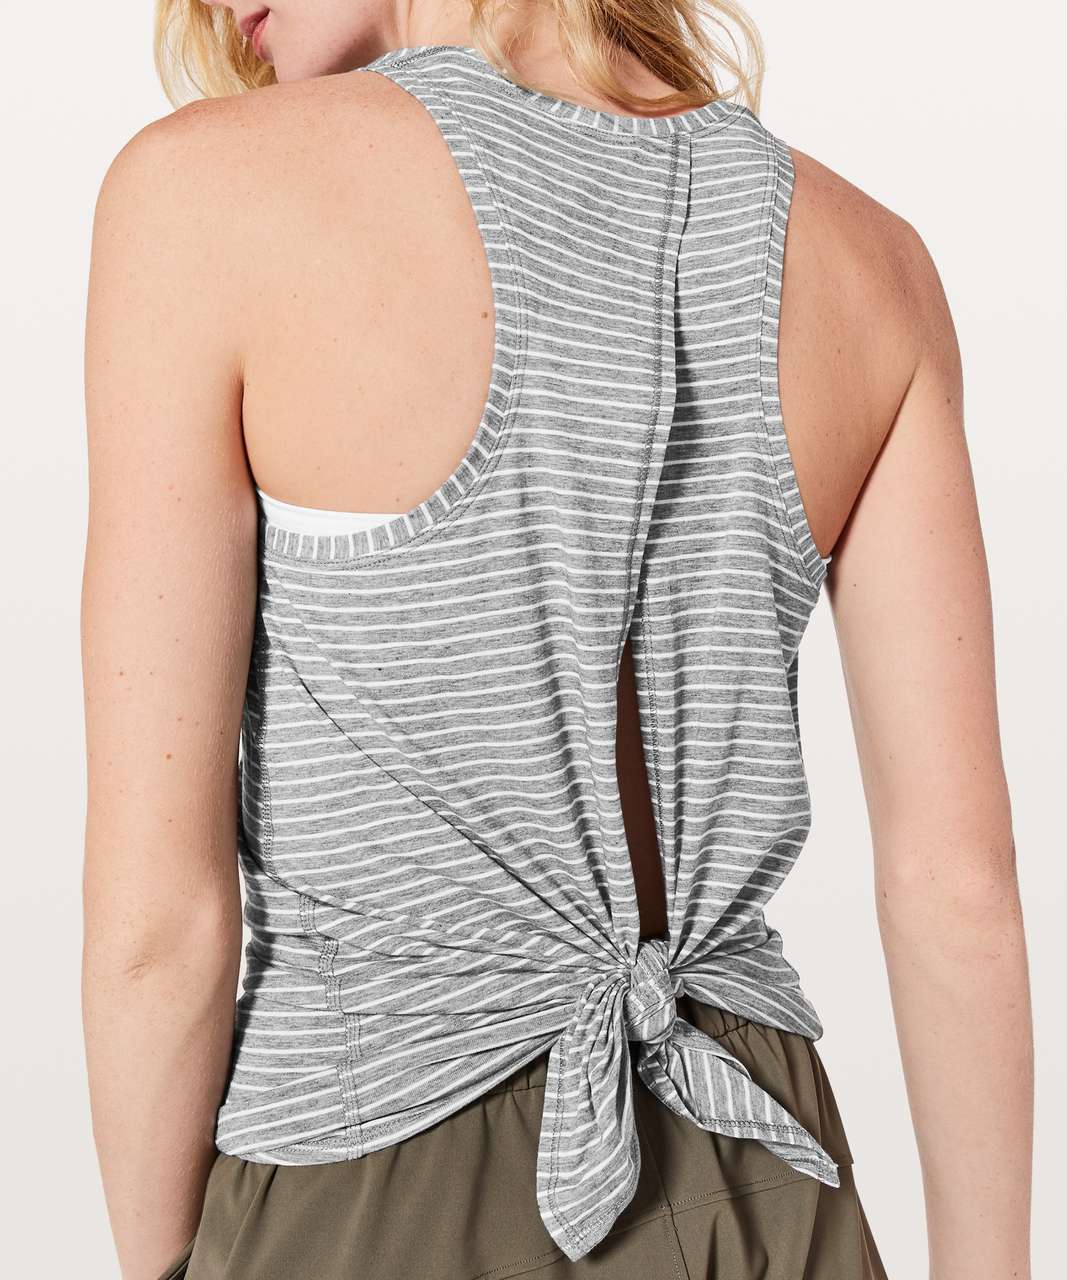 Lululemon All Tied Up Tank - Modern Stripe Heathered Medium Grey White